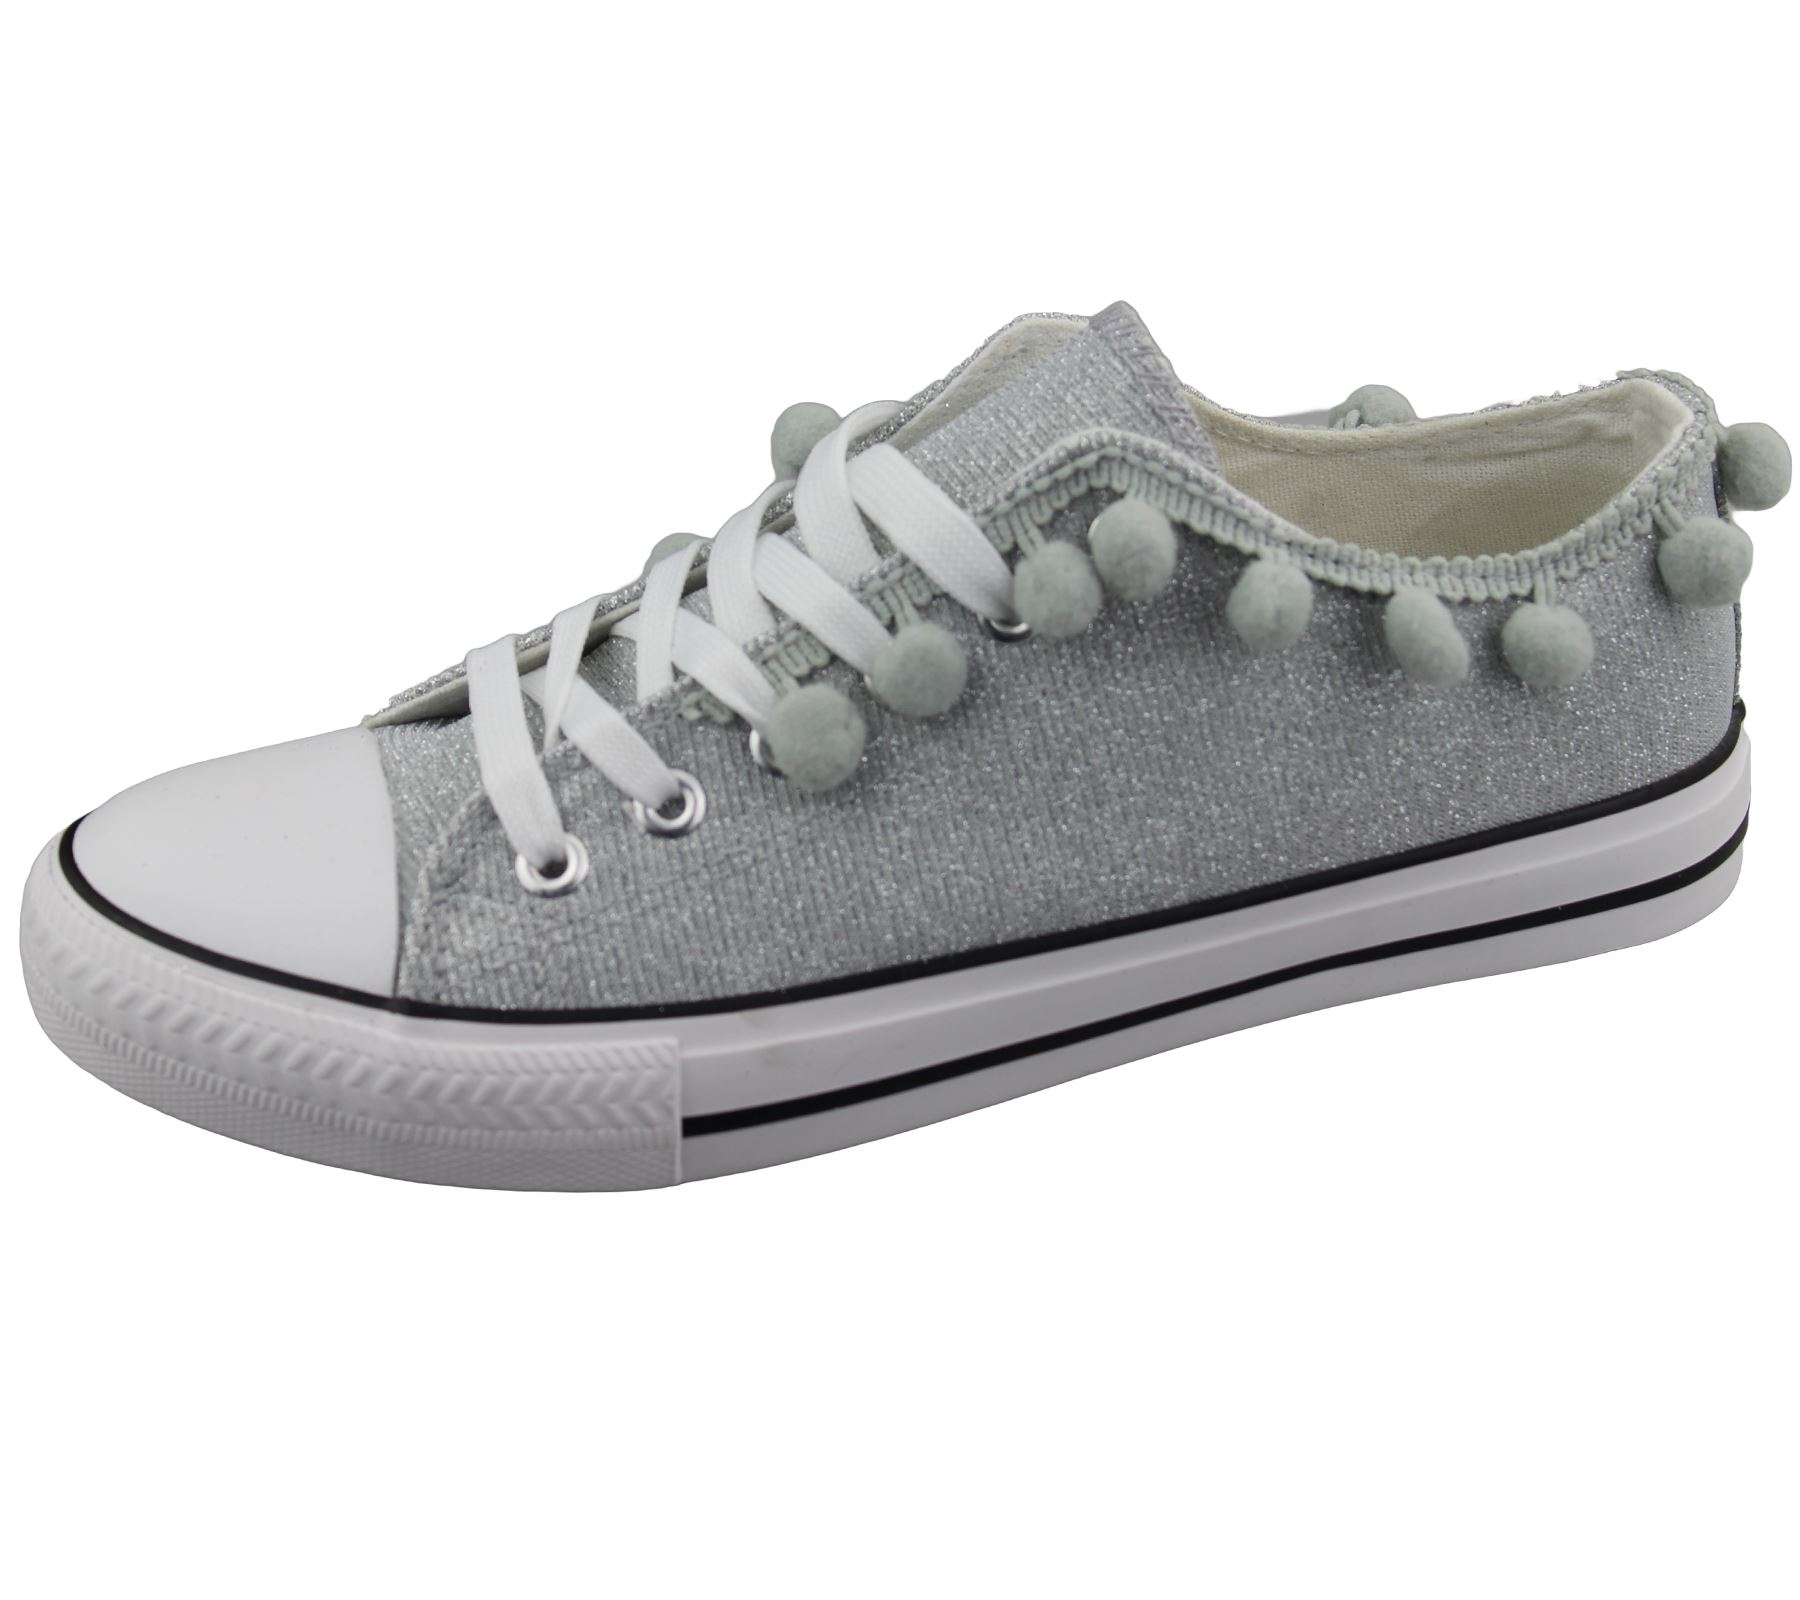 Womens-Sneakers-Flat-Pumps-Ladies-Glittered-Summer-Plimsole-Canvas-Shoes thumbnail 13